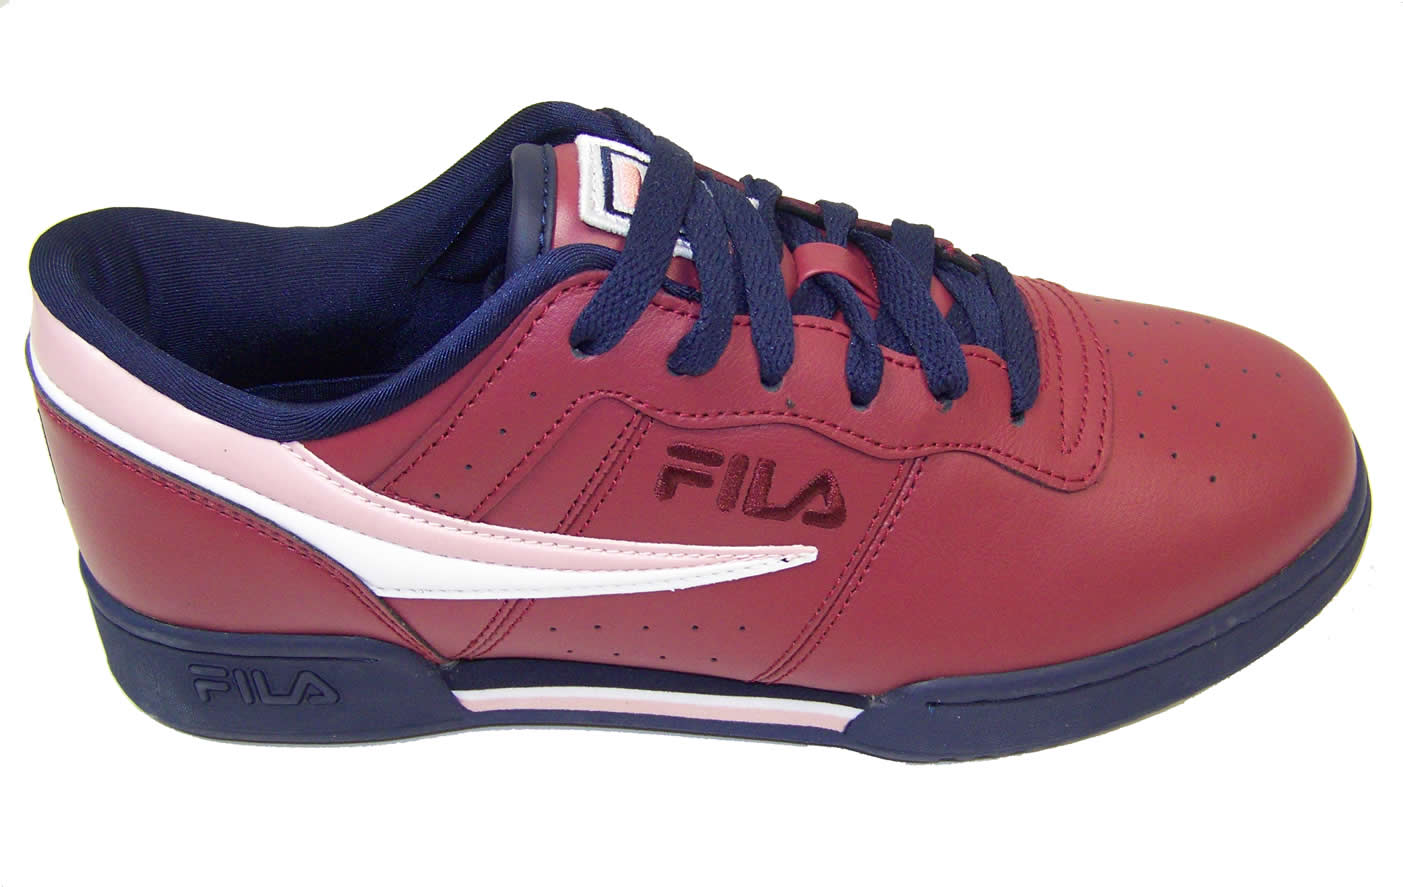 73559c40289d FILA Original Fitness (1FM00103-649) features